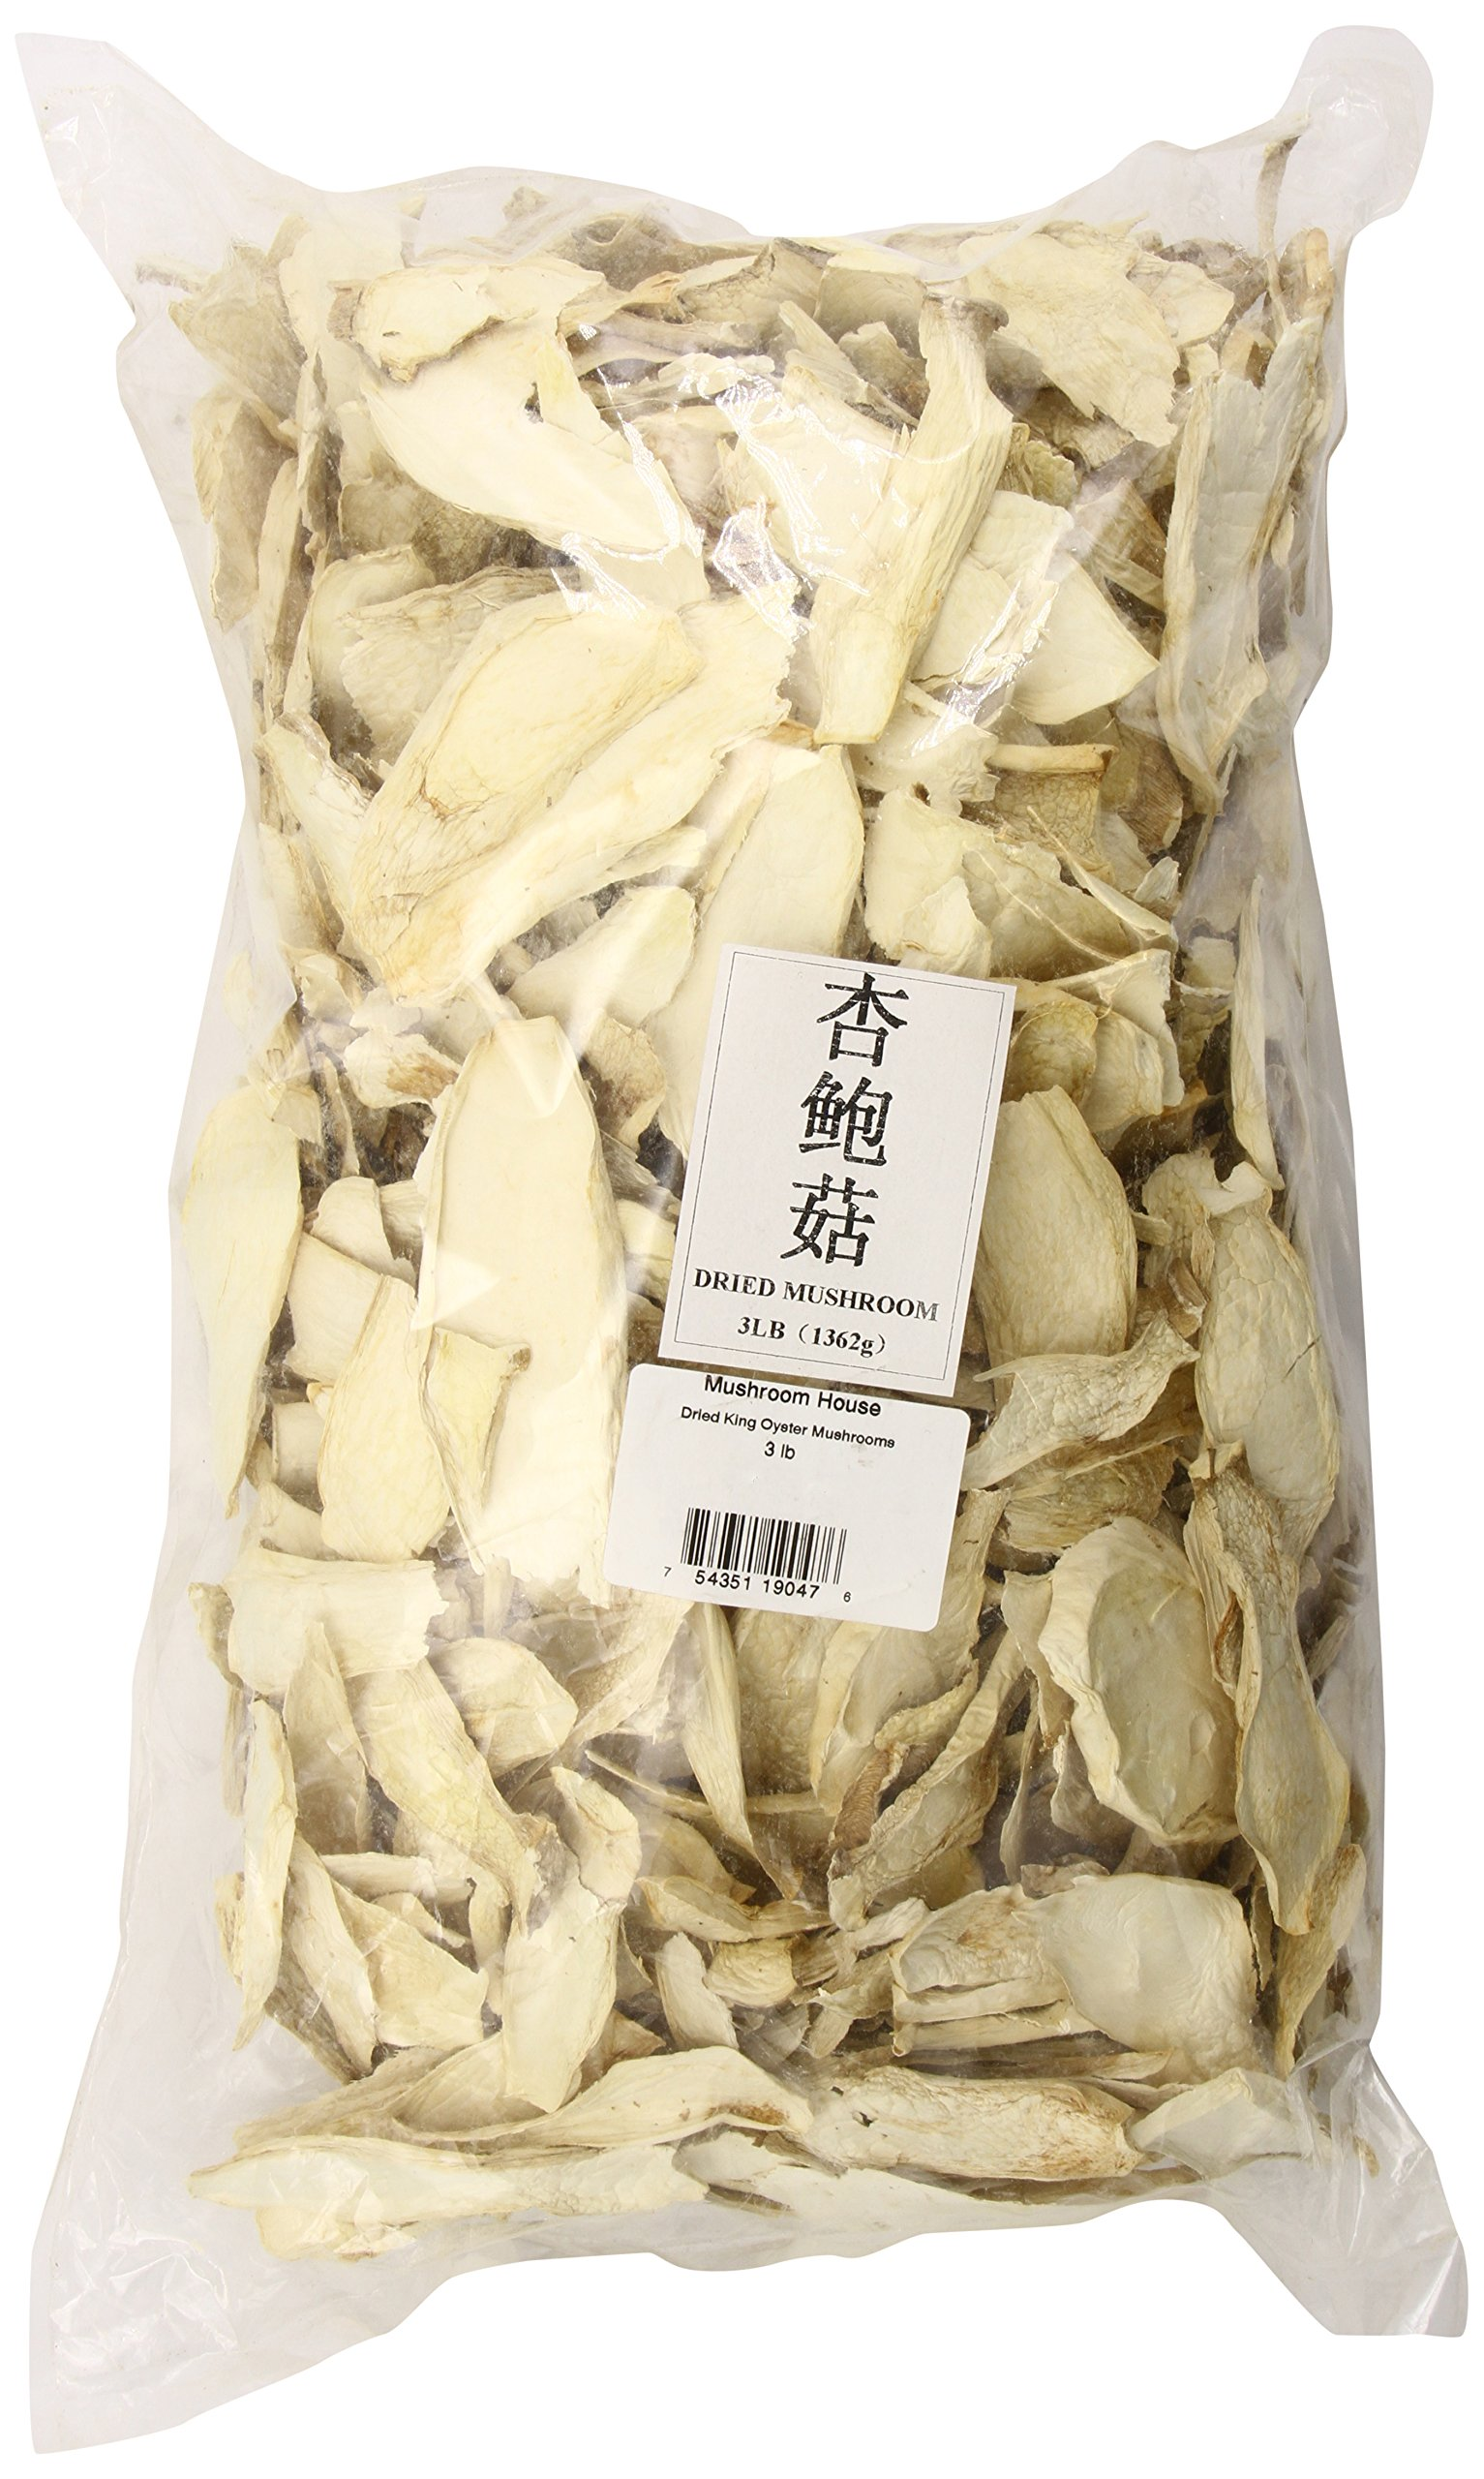 Mushroom House Dried King Oyster Mushrooms, 3-Pound by Mushroom House